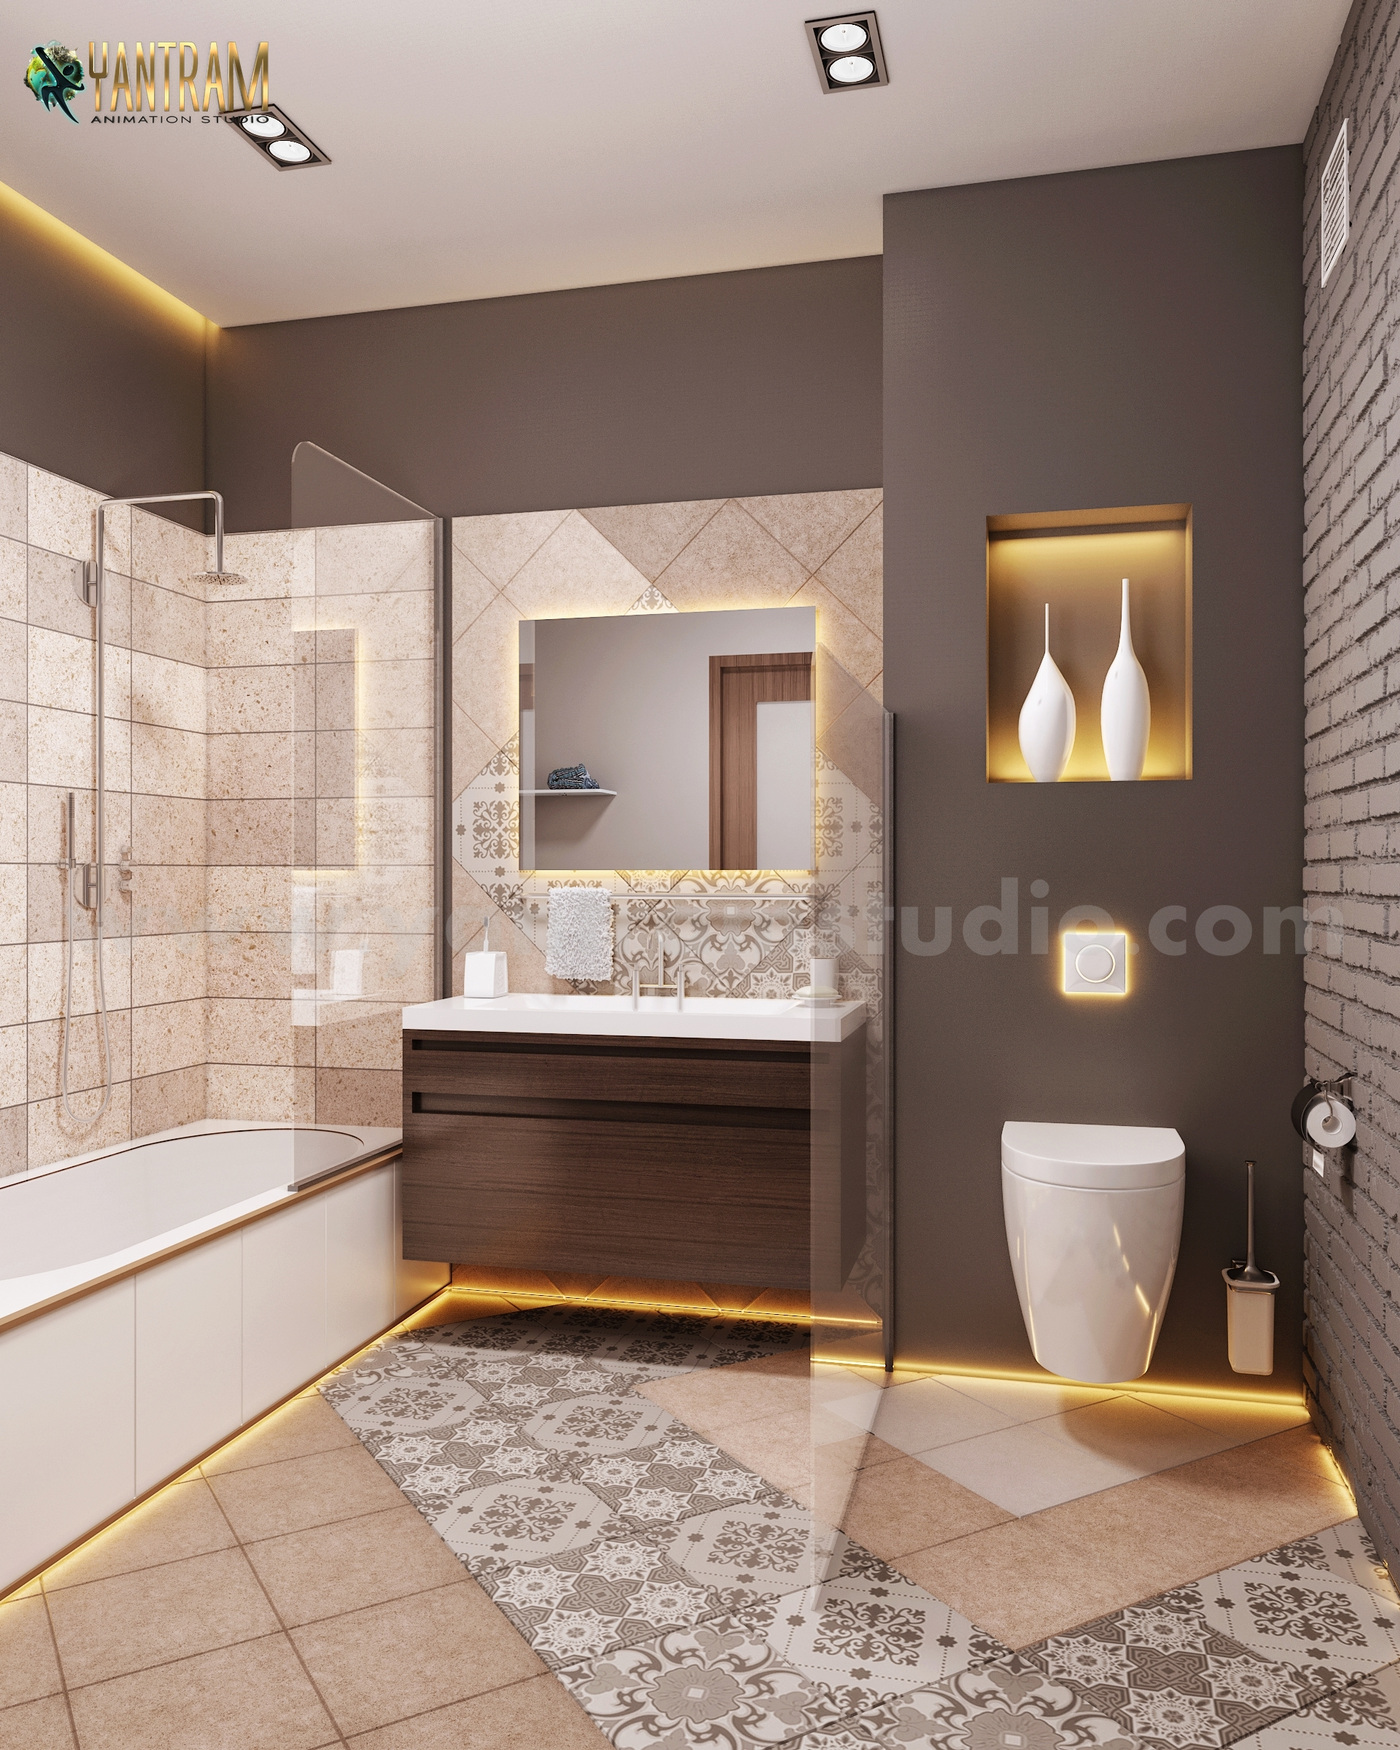 Yantram Studio - Contemporary Bathroom Decor Style Interior Design for Home by Architectural Design Studio, Qatar - Doha